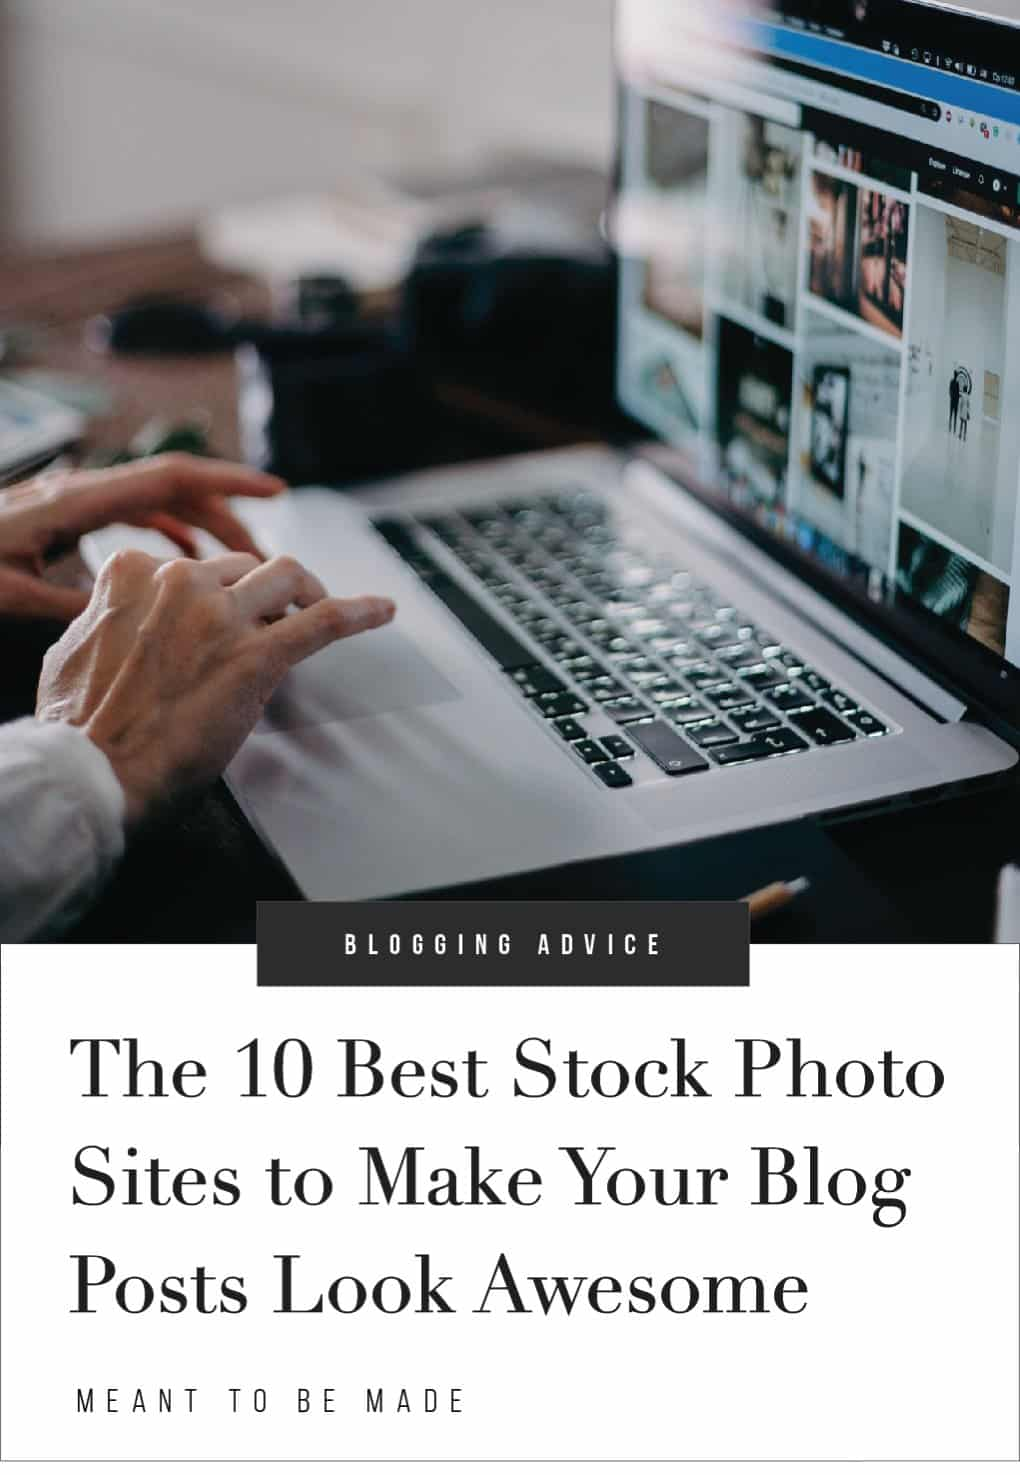 The 10 Best Stock Photo Sites to Make Your Blog Posts Look Awesome